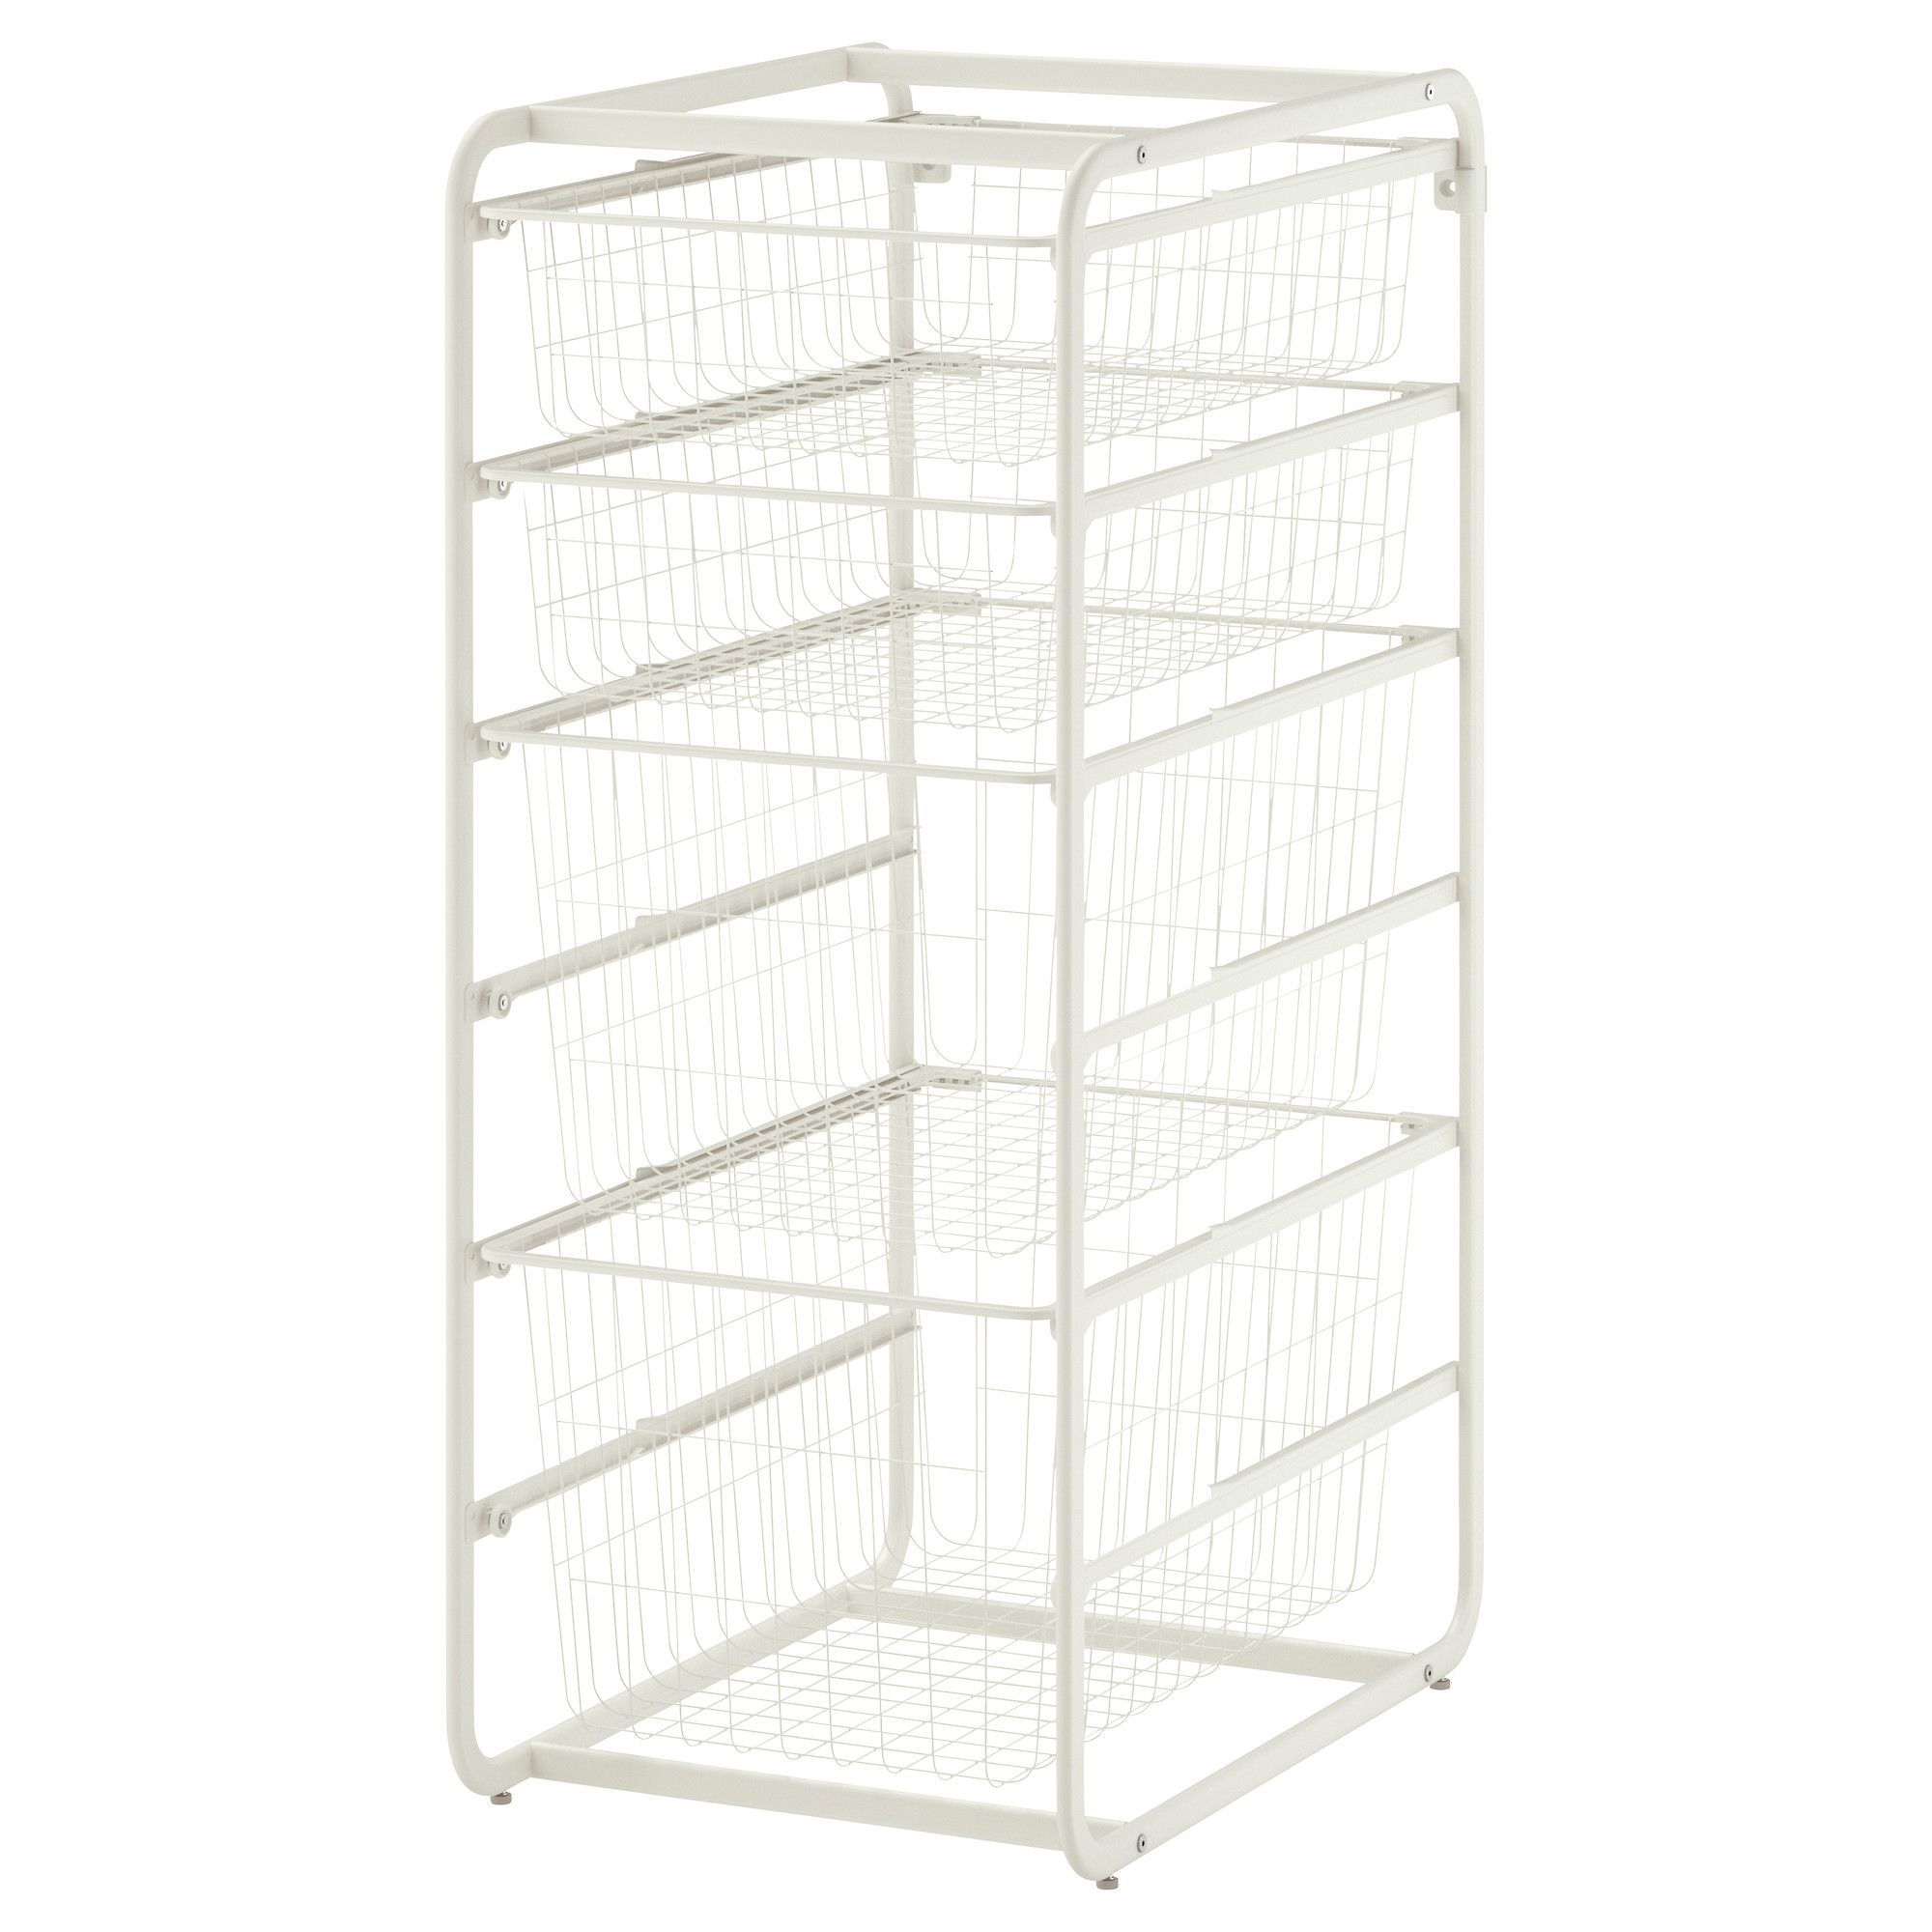 39 49 Algot Frame With 4 Wire Baskets